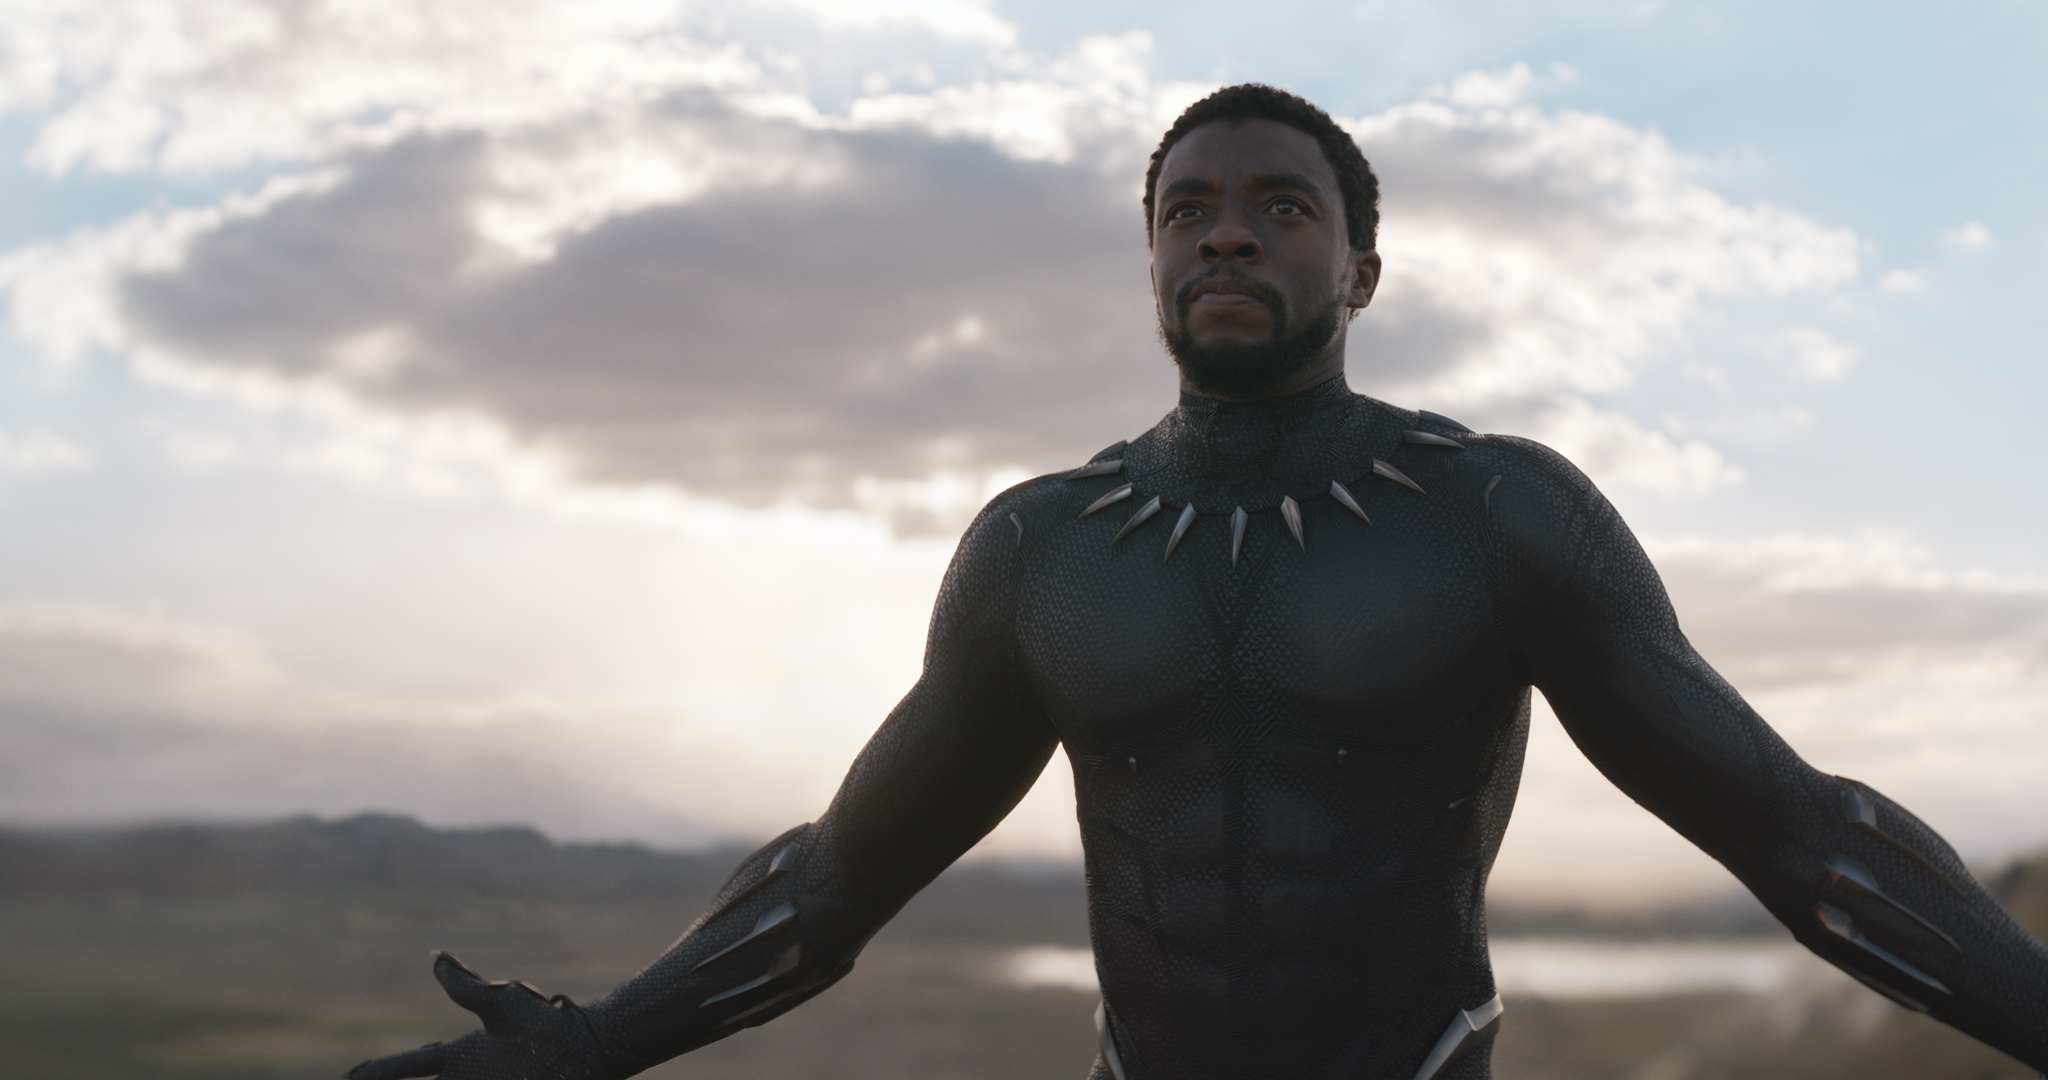 Chadwick Boseman as Black Panther/T'Challa in the new film from Marvel Studios.